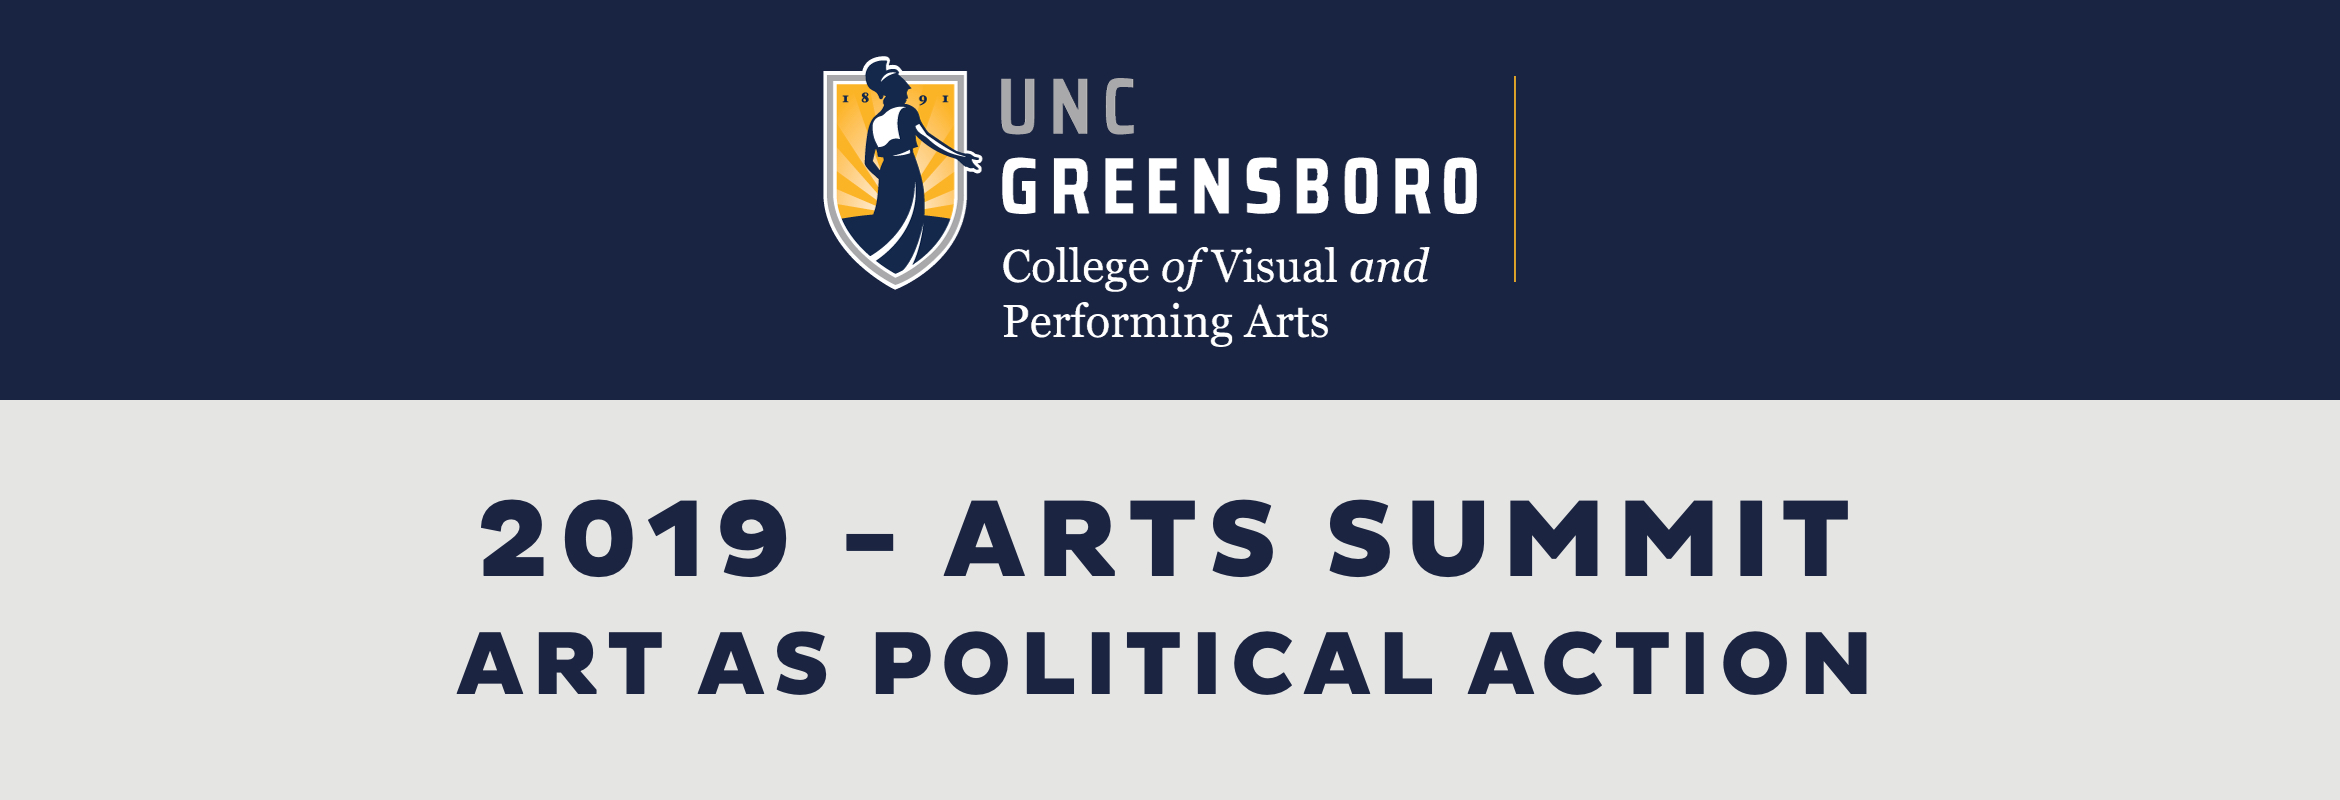 Arts Summit 2019